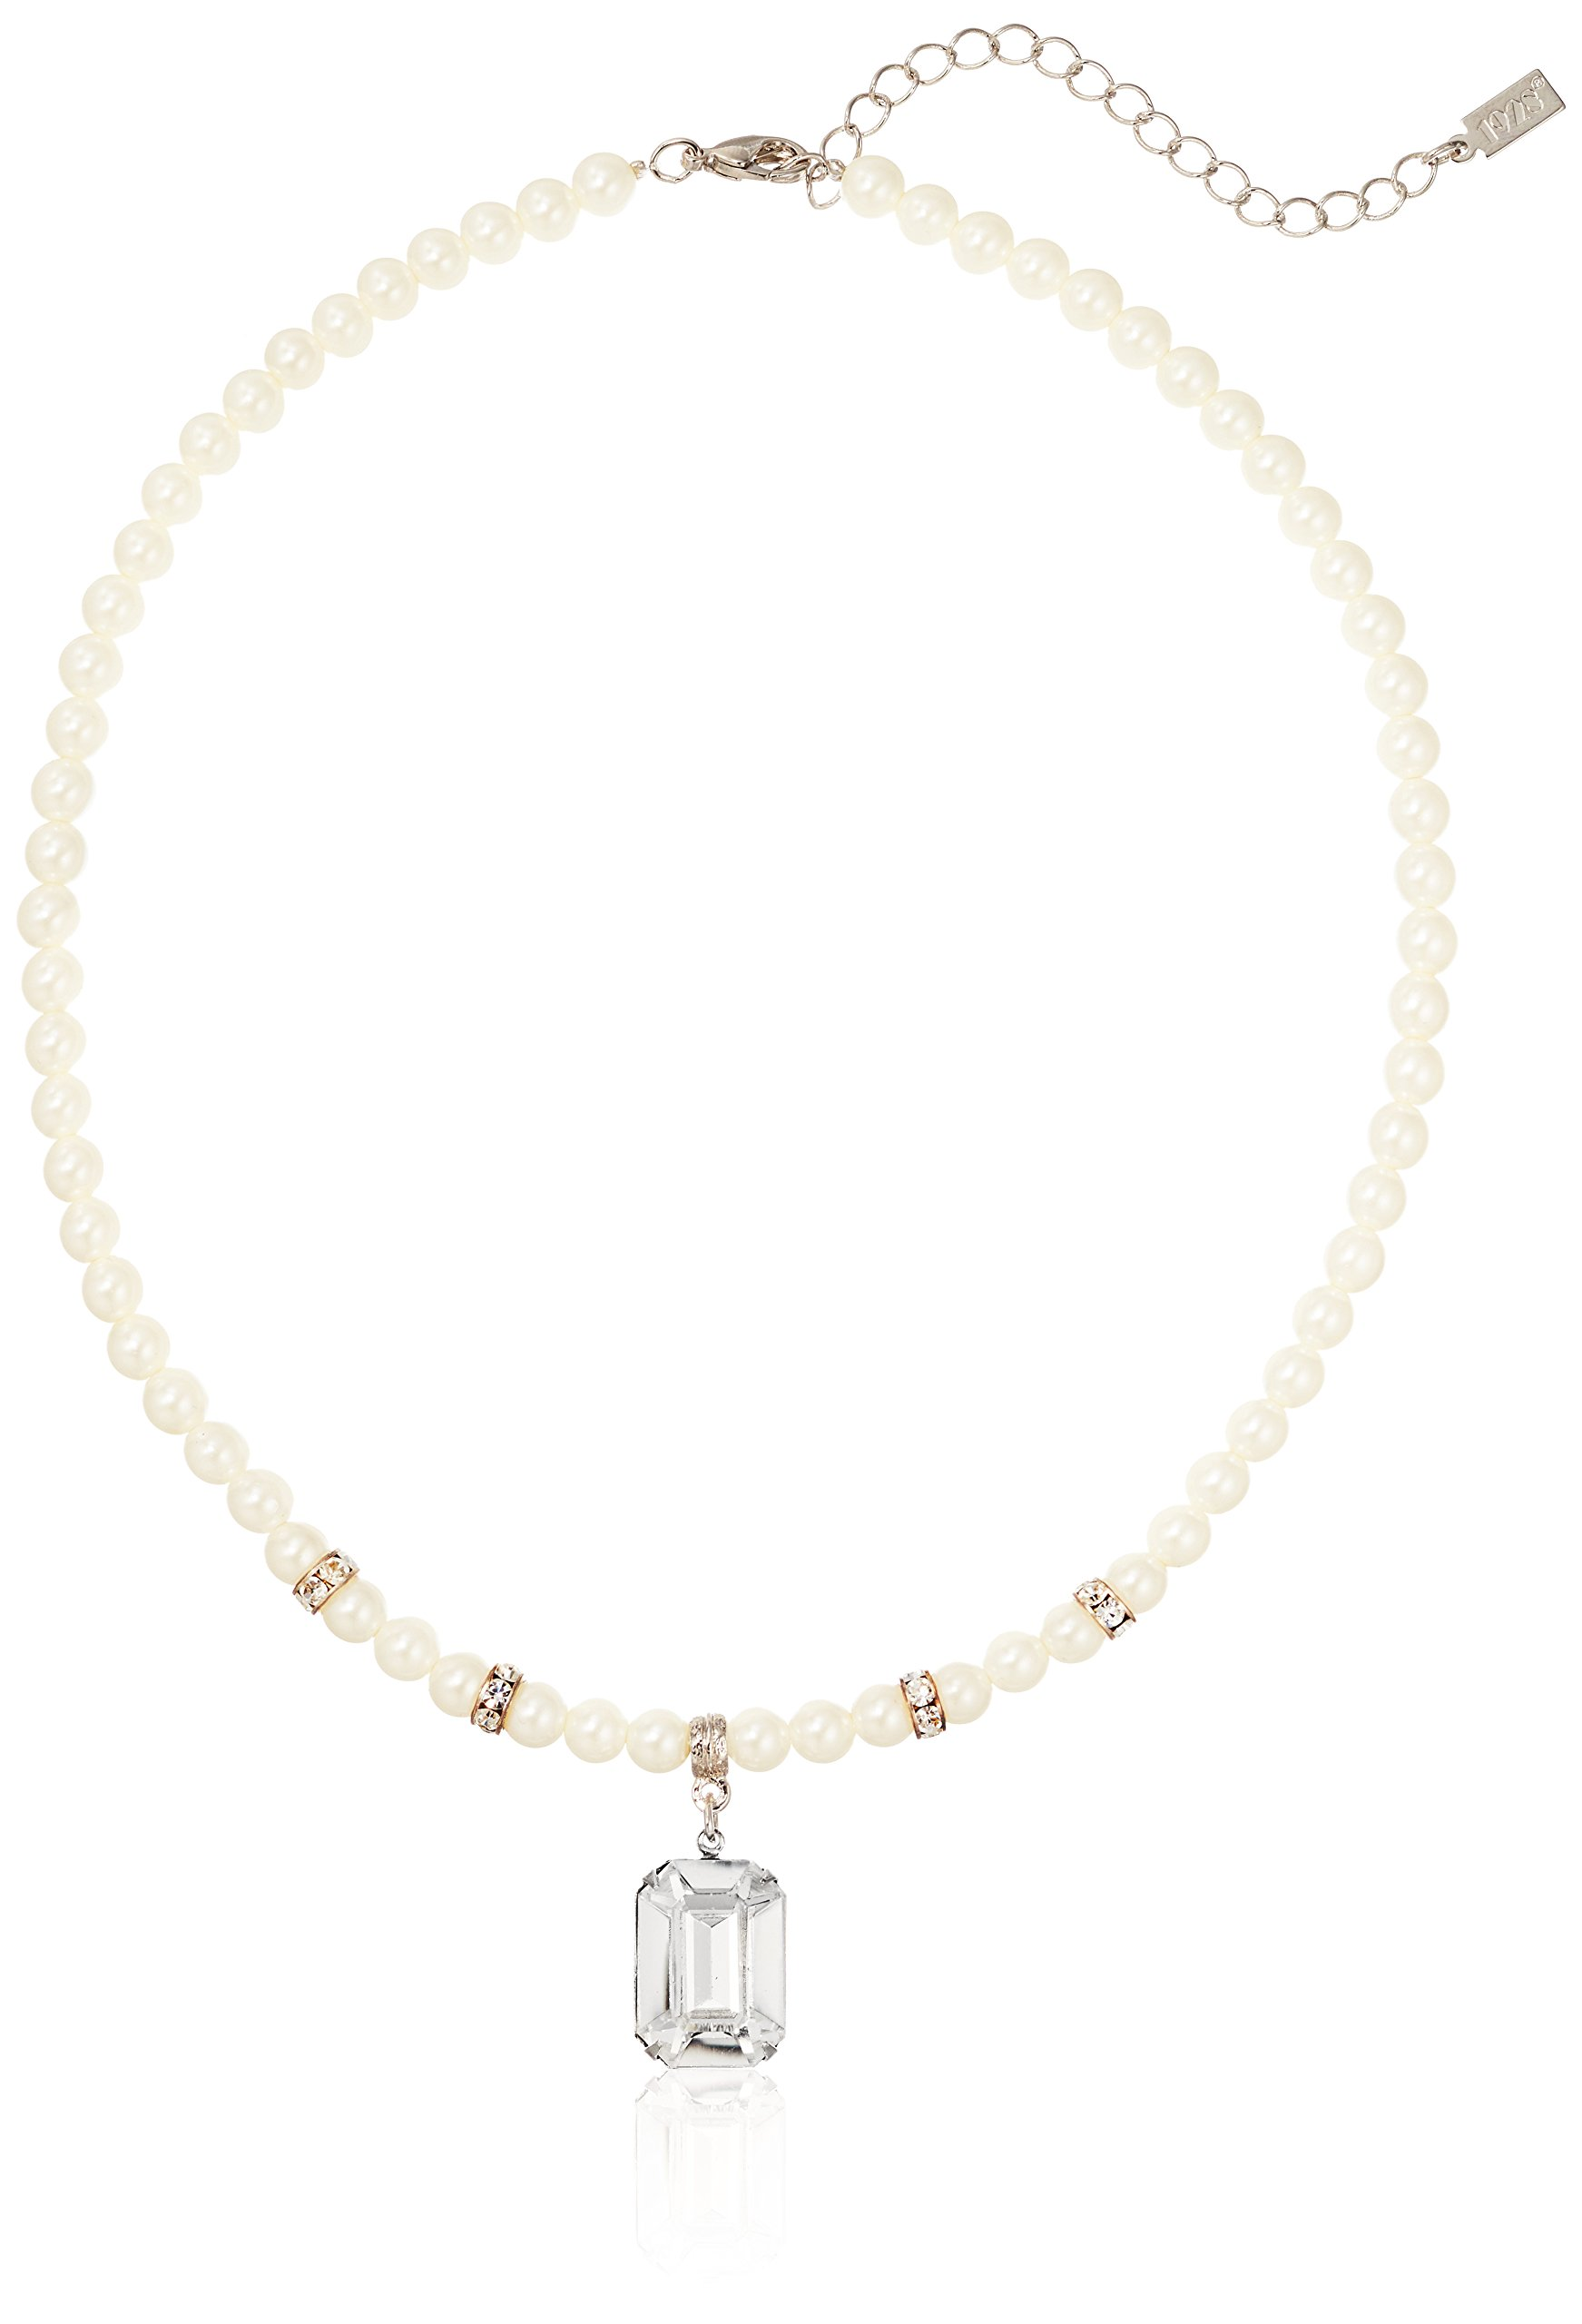 Necklace Silver-tone Simulated Pearl White Crystal w//3in ext